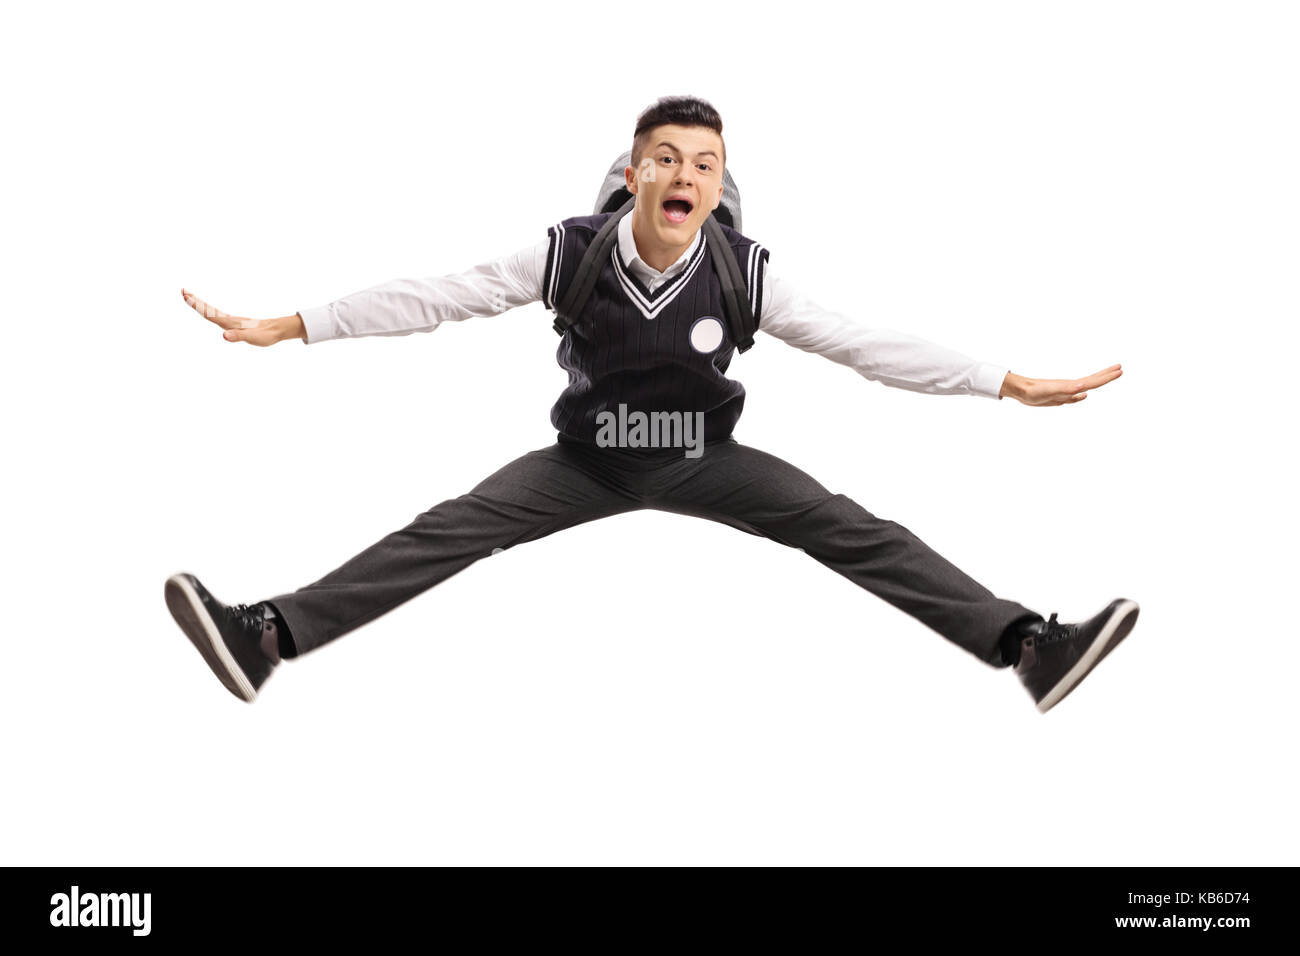 Overjoyed teenage student in a uniform jumping isolated on white background - Stock Image